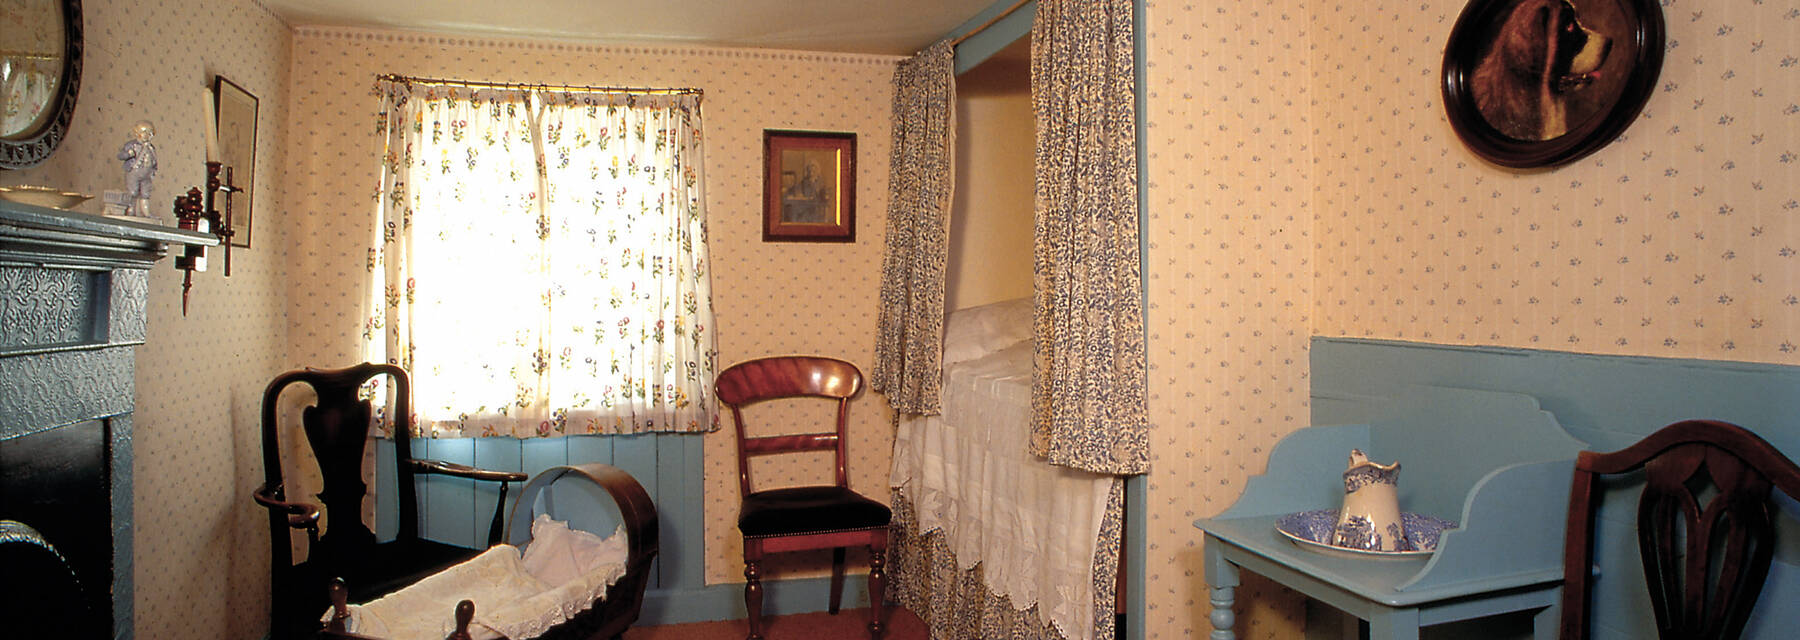 J M Barrie's Birthplace bedroom with cradle and painting of a St Bernard dog